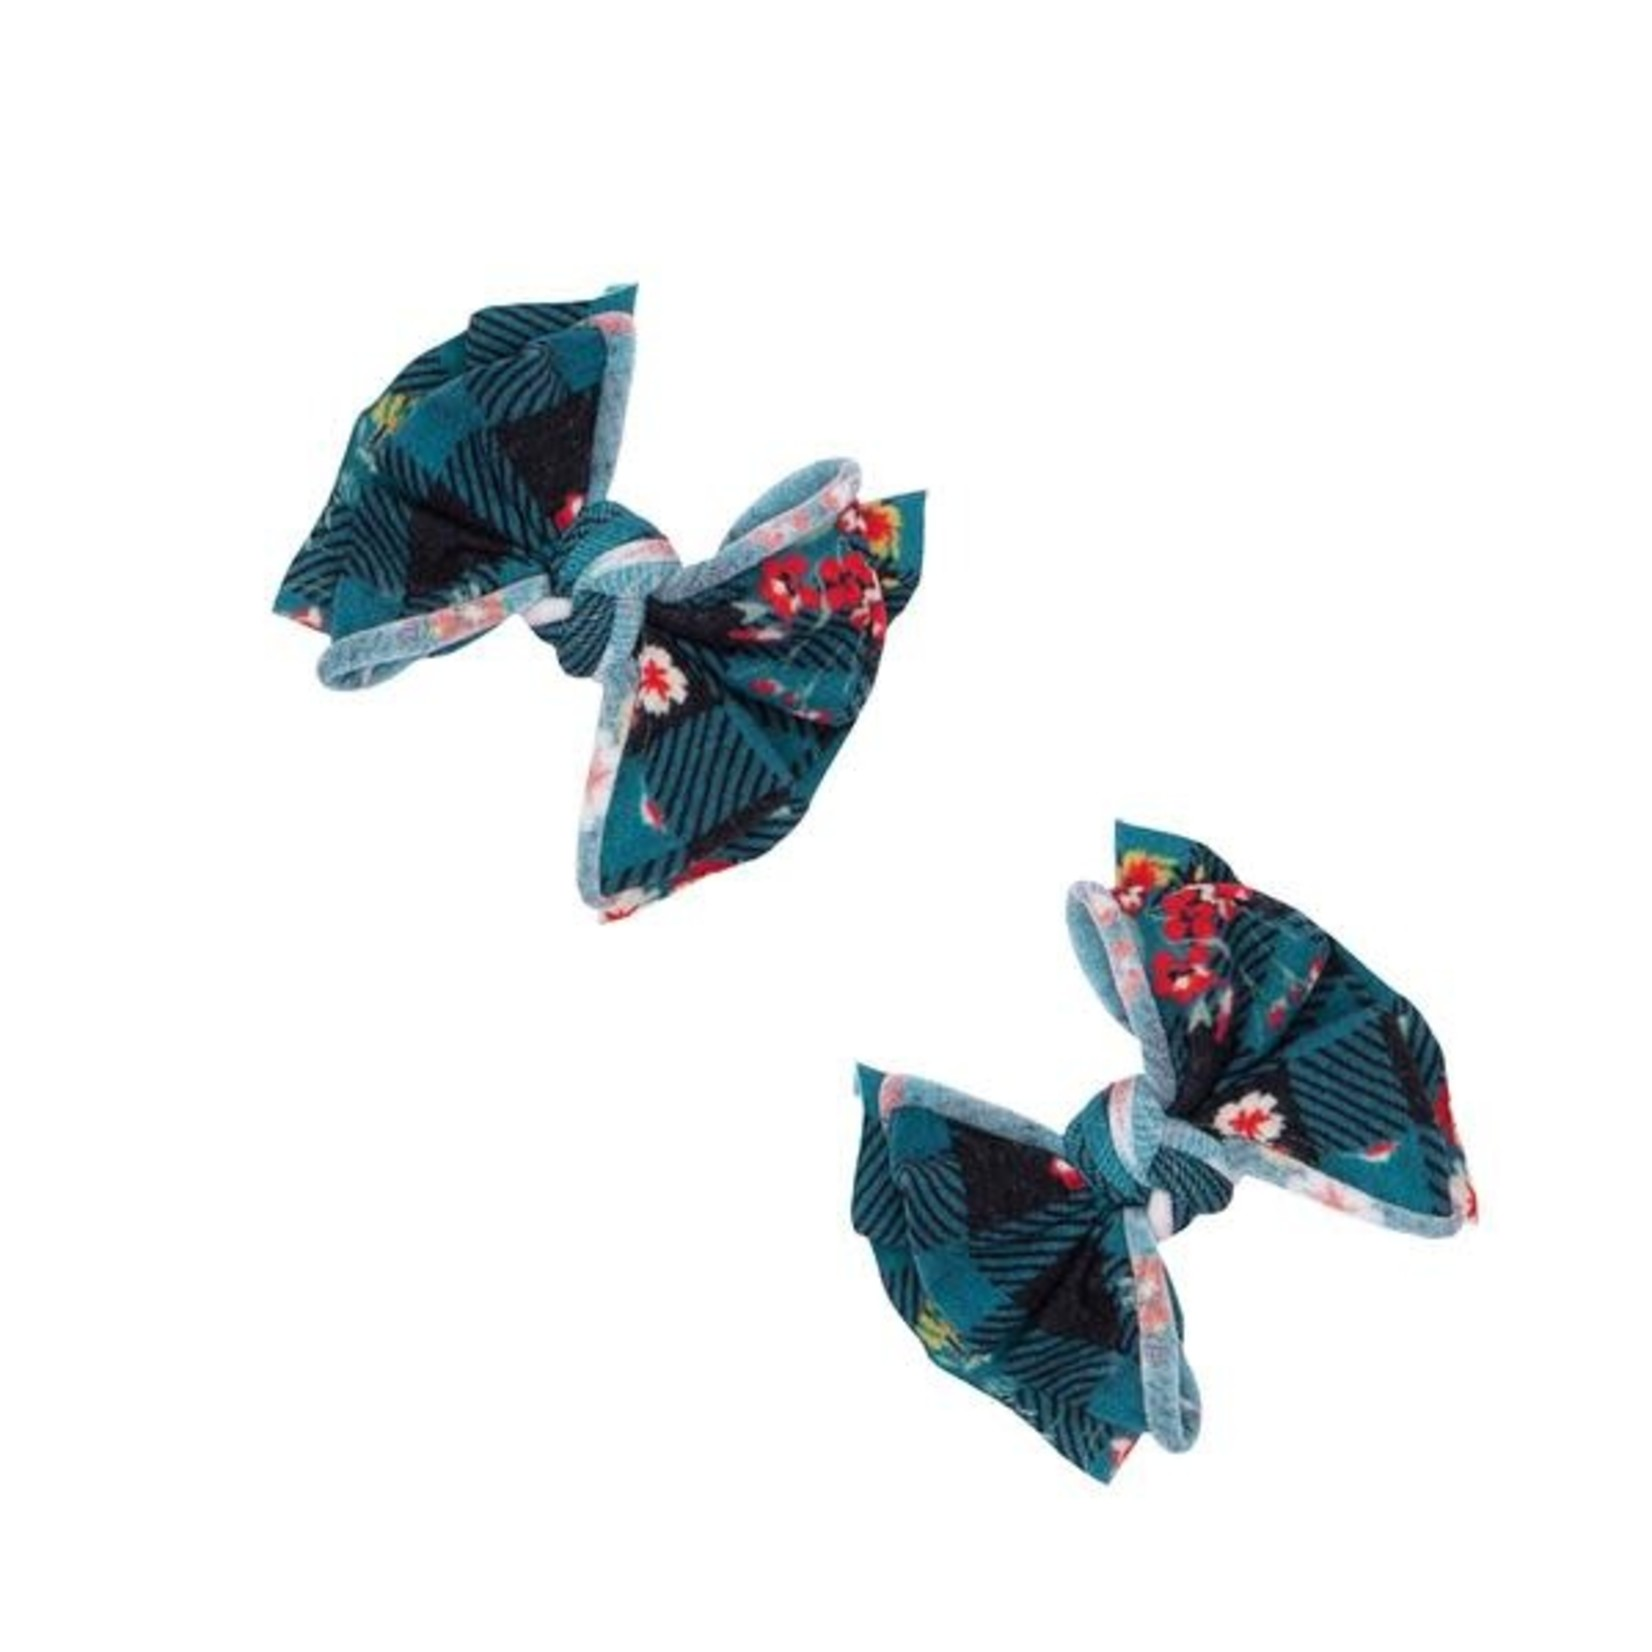 Baby Bling Bows 2PK PRINTED BABY FAB CLIPS: floral plaid